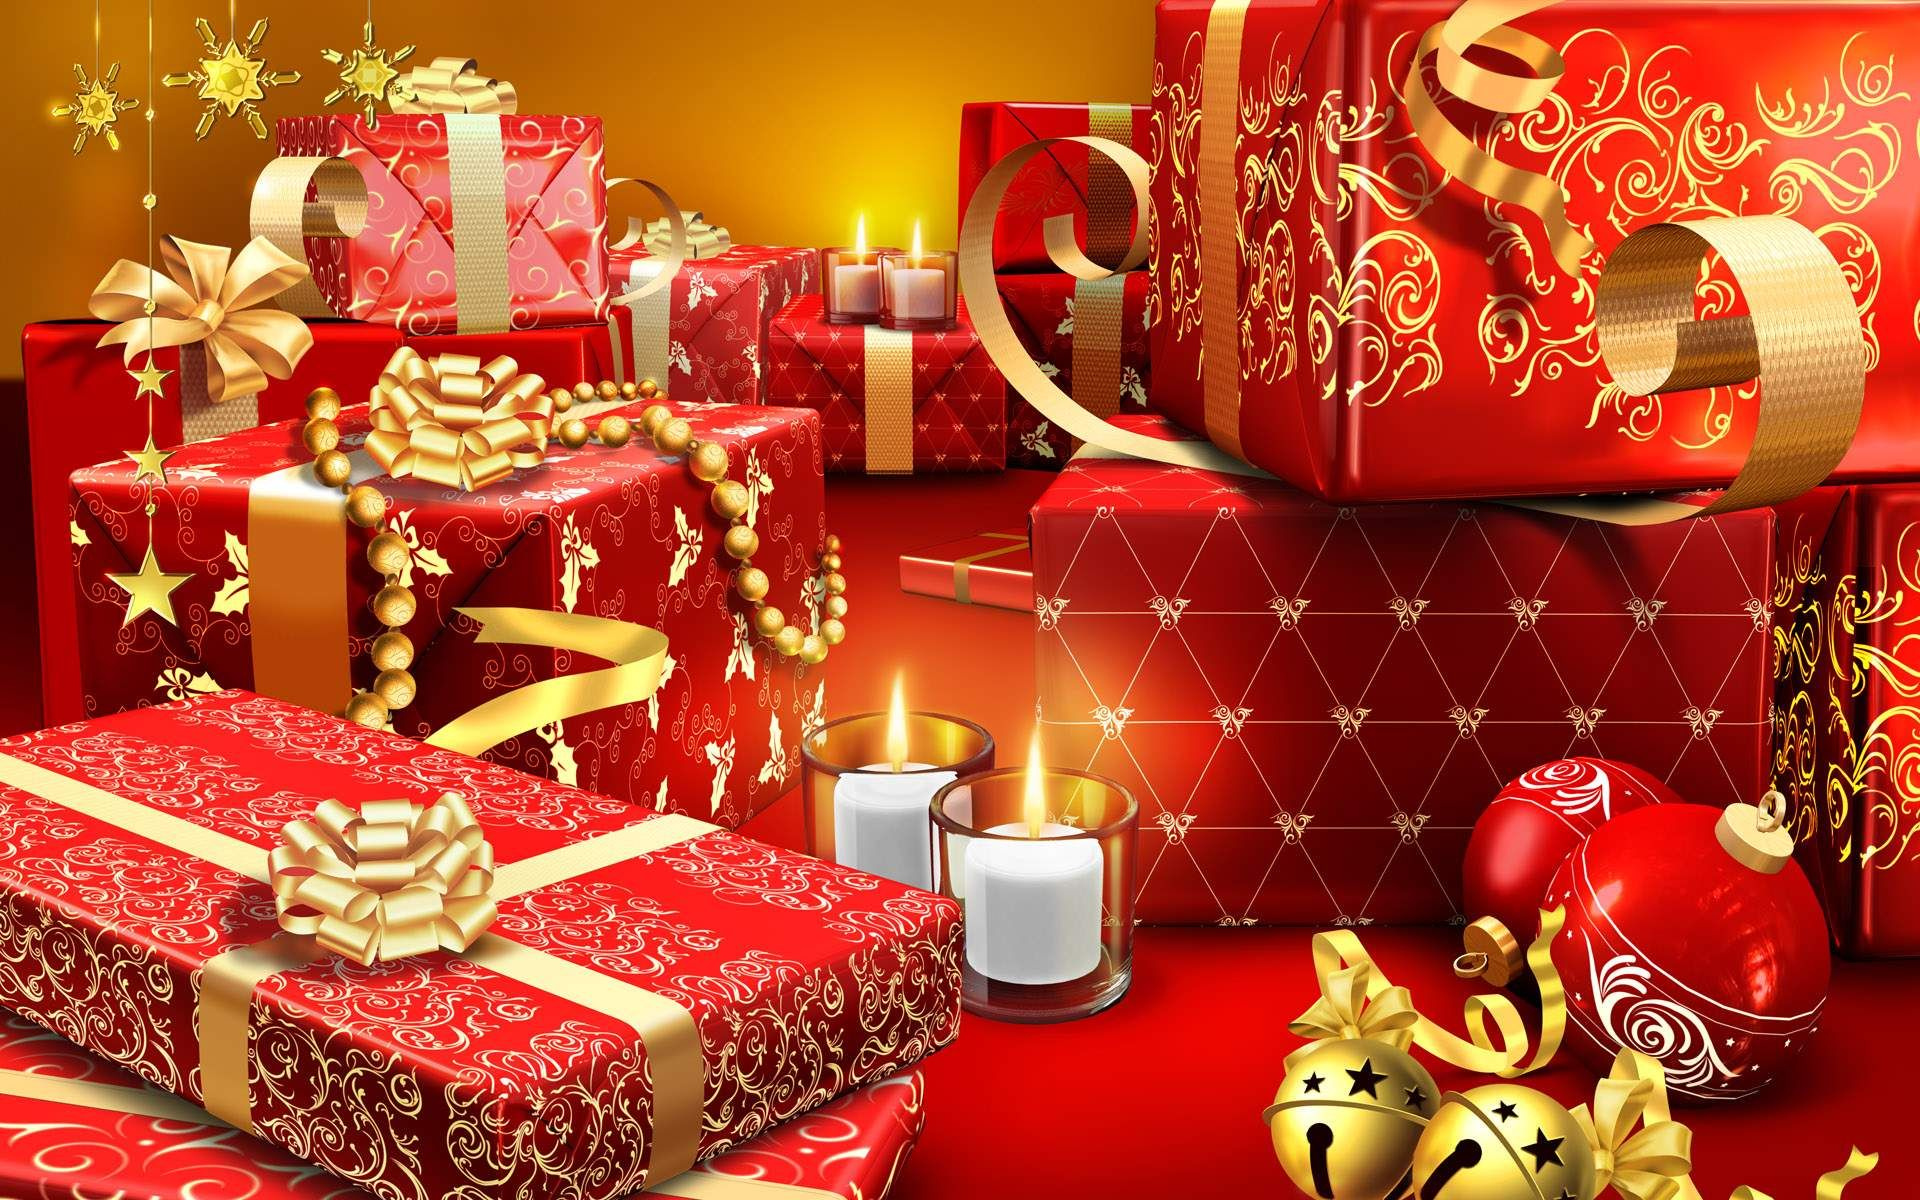 Christmas wallpapers red christmas decorations and gifts on christmas - Animated Christmas Pictures Free Animated Christmas Wallpapers Wallpaper Desktop Backgrounds Red Christmaschristmas Gift Ideaschristmas